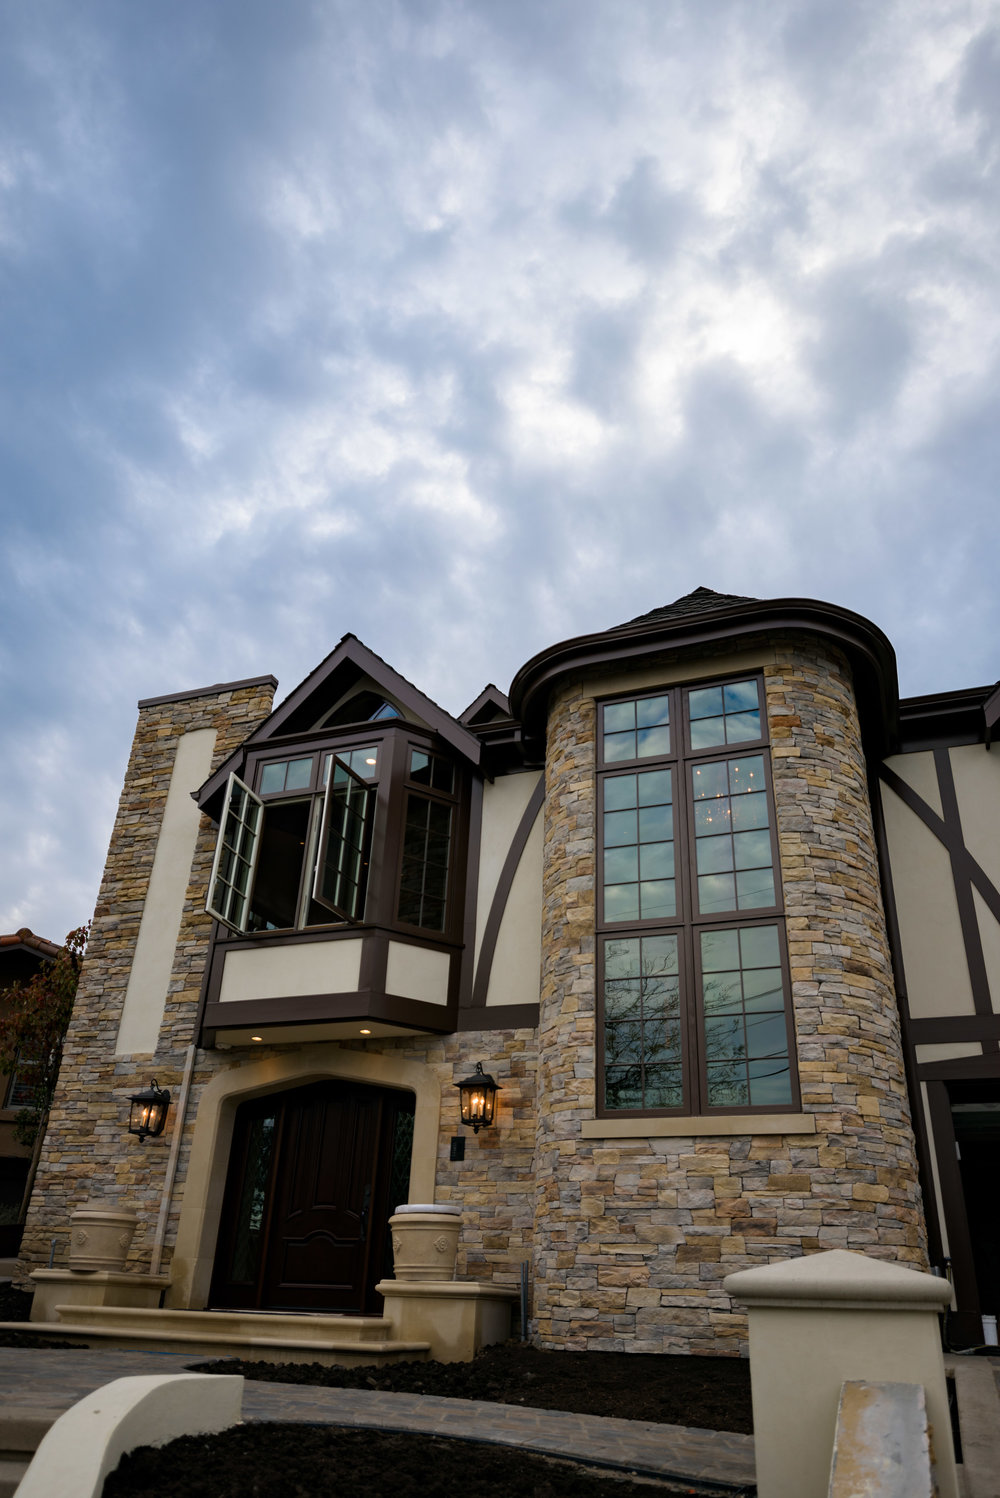 8653_Hillcrest_Rd_San_Carlos_Residential_Architecture_Photography.jpg